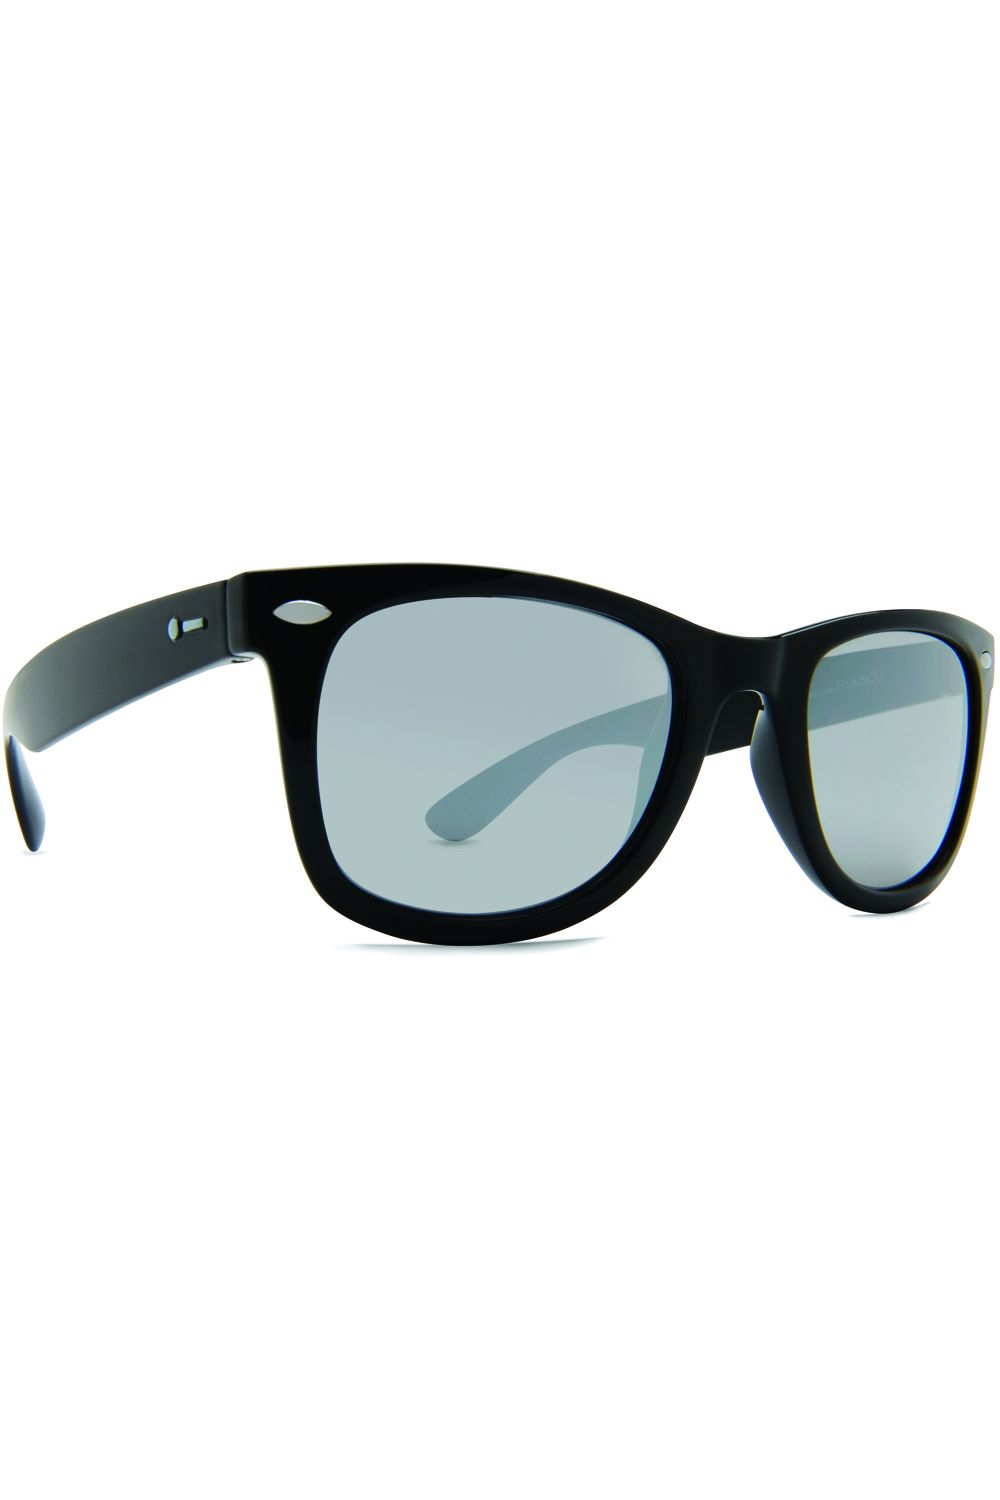 Oculos Dot Dash PLIMSOUL Black Gloss / Silver Chrome